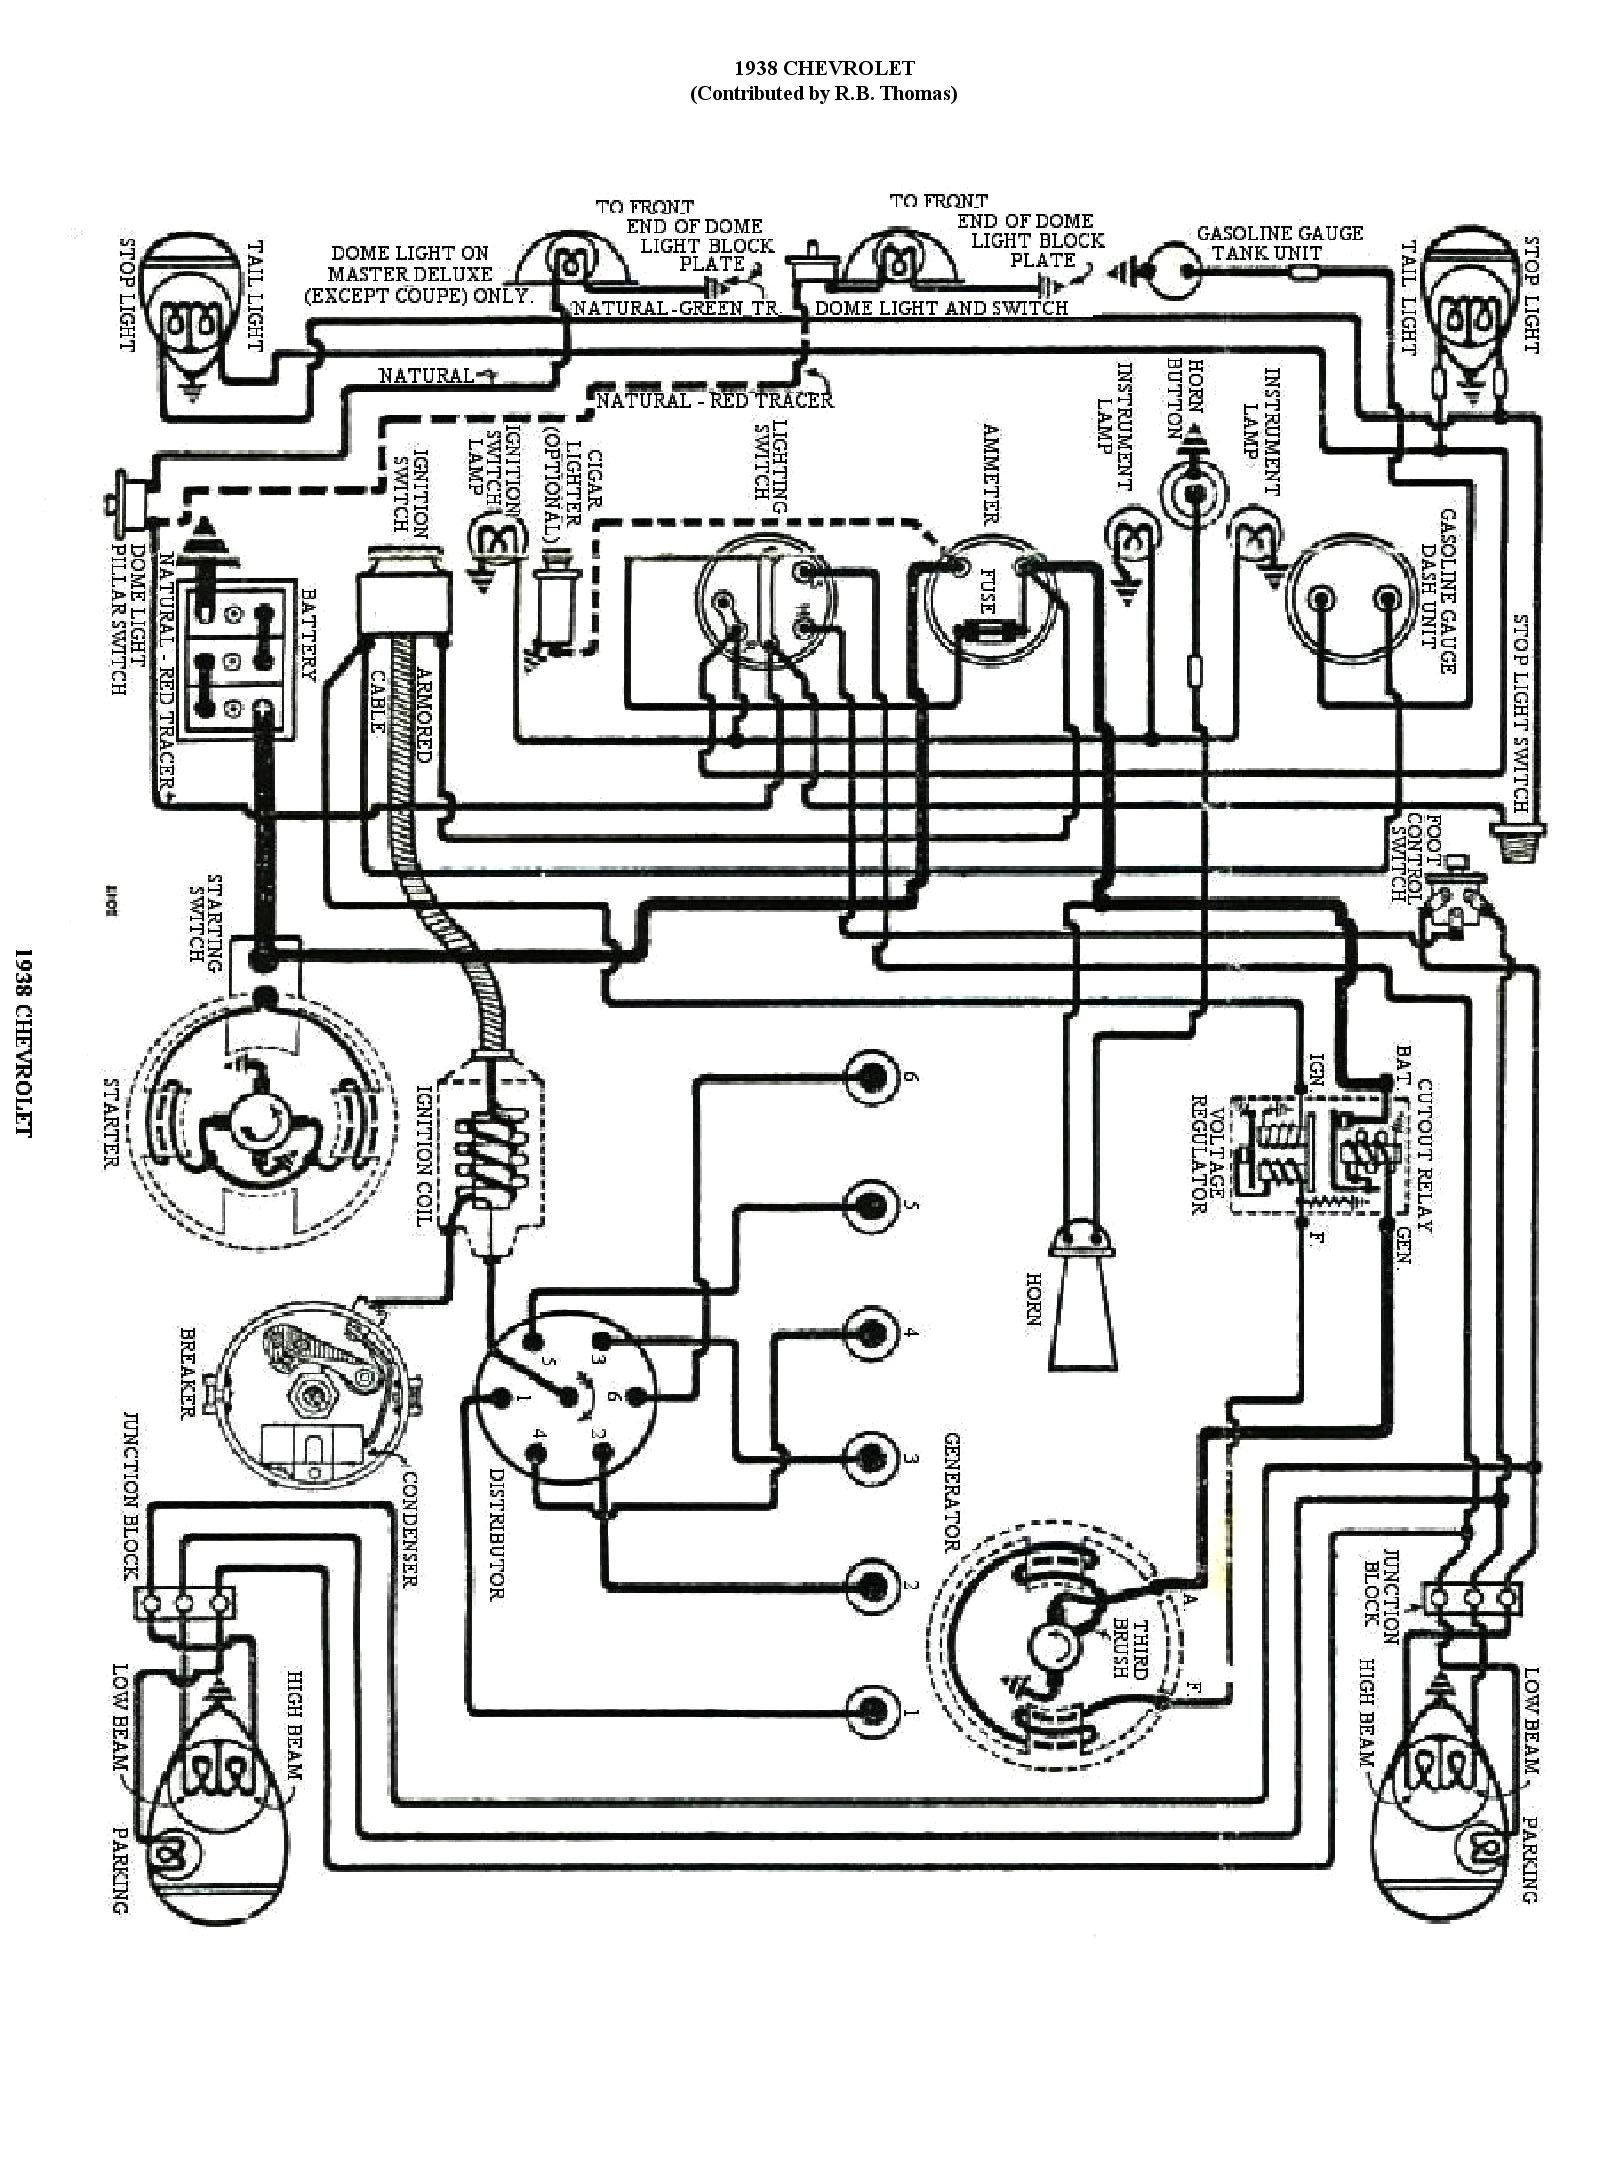 1946 Dodge Wiring Diagram